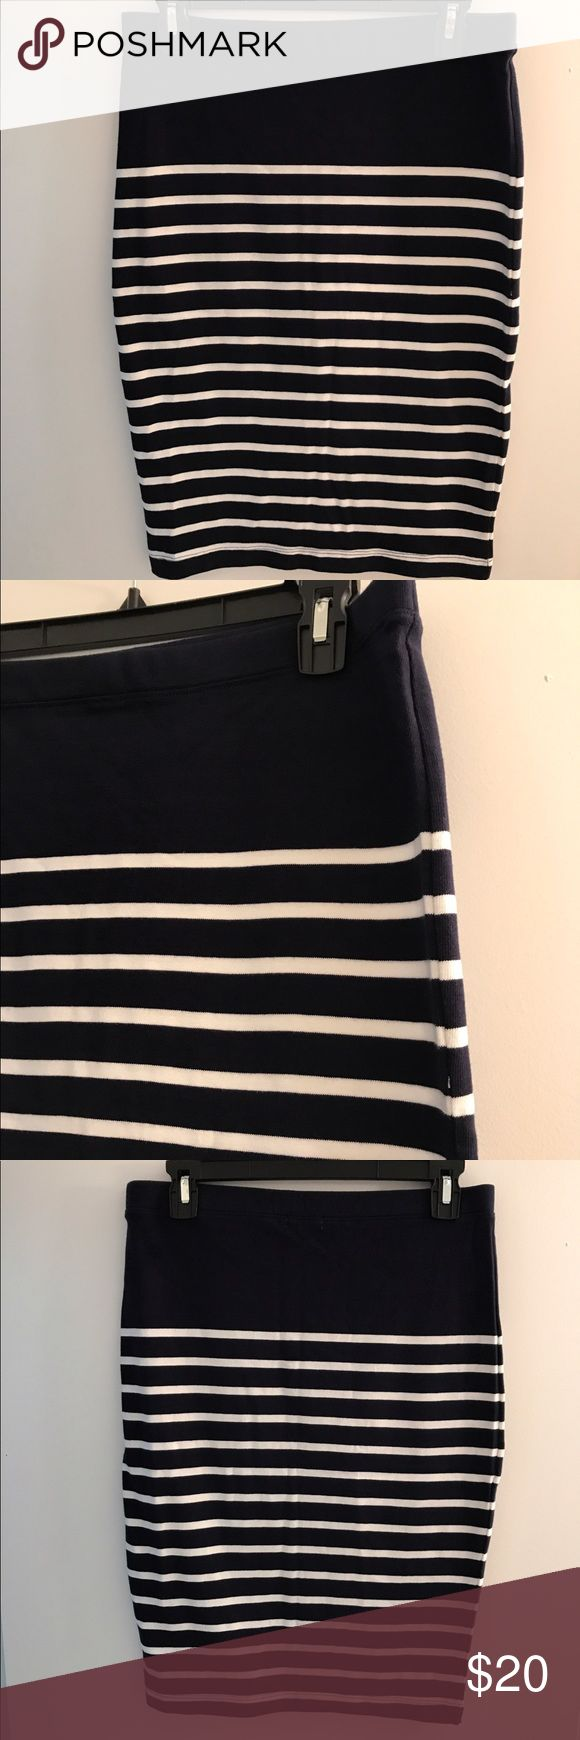 GAP navy striped skirt, NWOT. Cute navy and white striped pencil skirt from GAP. Fits from my belly button to knee. Mid weight, stretchy. Size small. 15 1/2 flat waist in inches, 23 length. New without tags, never worn. 100% cotton. Smoke free home. GAP Skirts Pencil